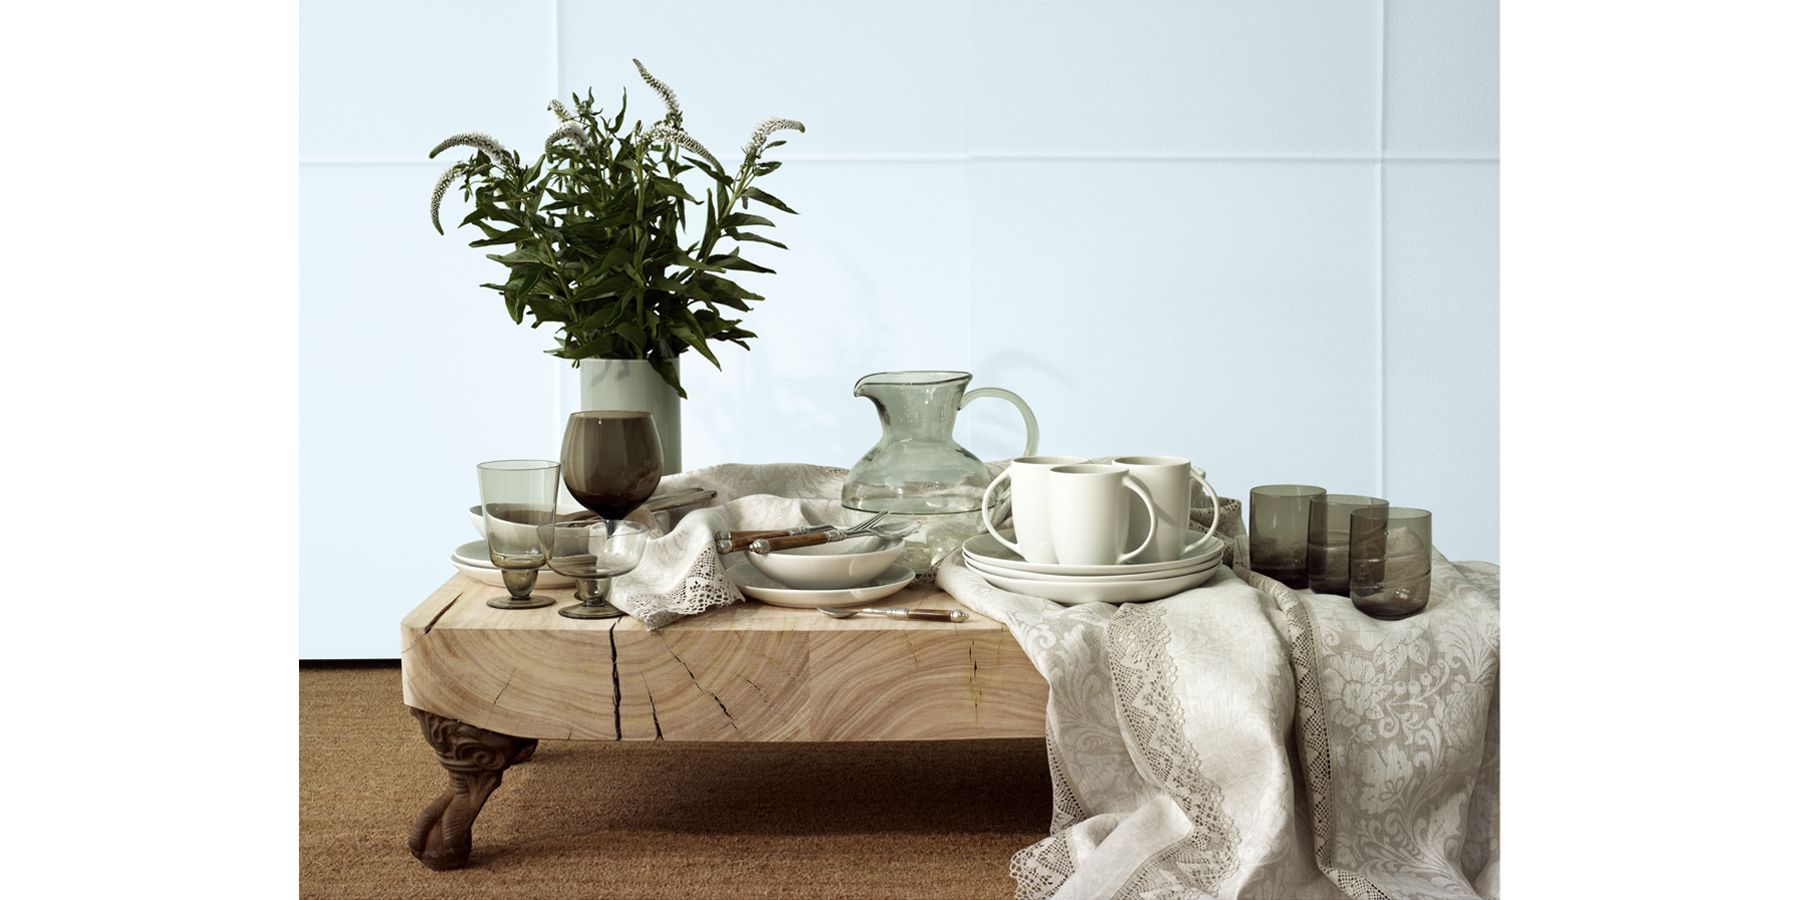 Zara home spring summer 2012 for Table zara home